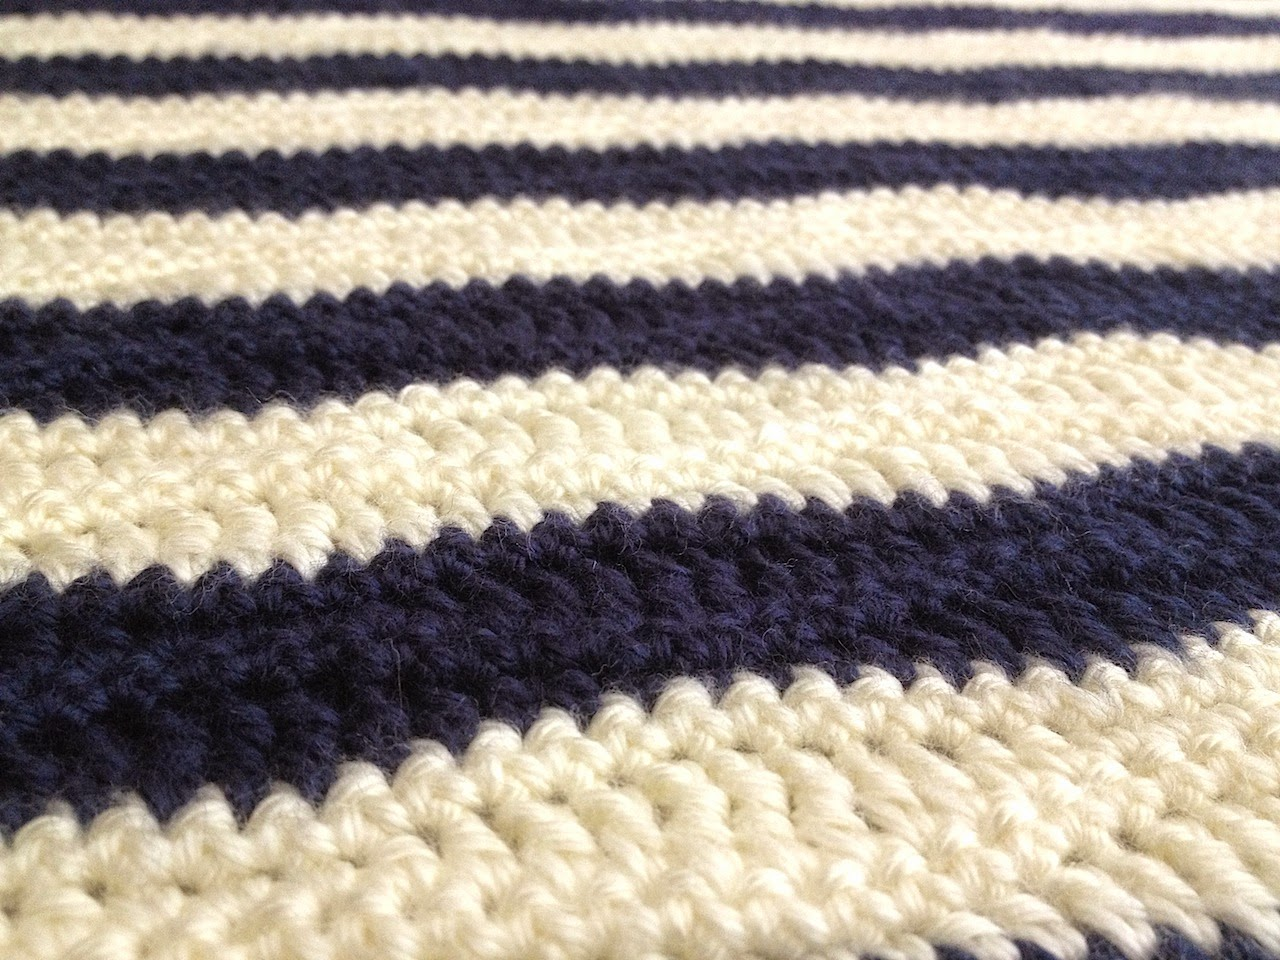 Crochet Patterns Nautical : The Nautical Baby Blanket pattern is available on Ravelry and Craftsy ...